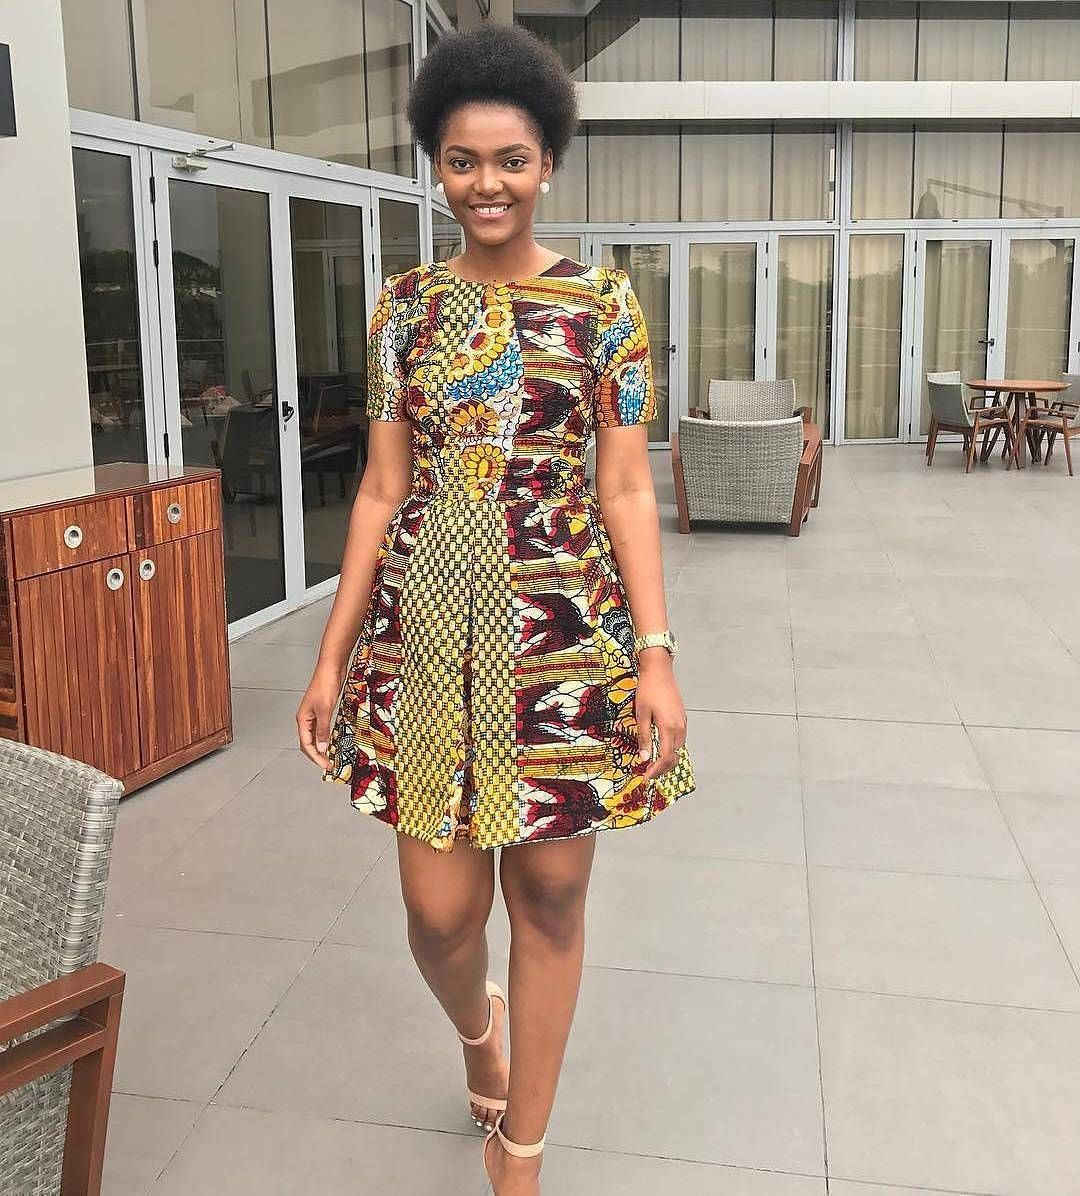 b96888a0176 Casual Ankara Look  dorcas dienda  ankarastyles  style  stylish  fashion   instafashion  instastyle